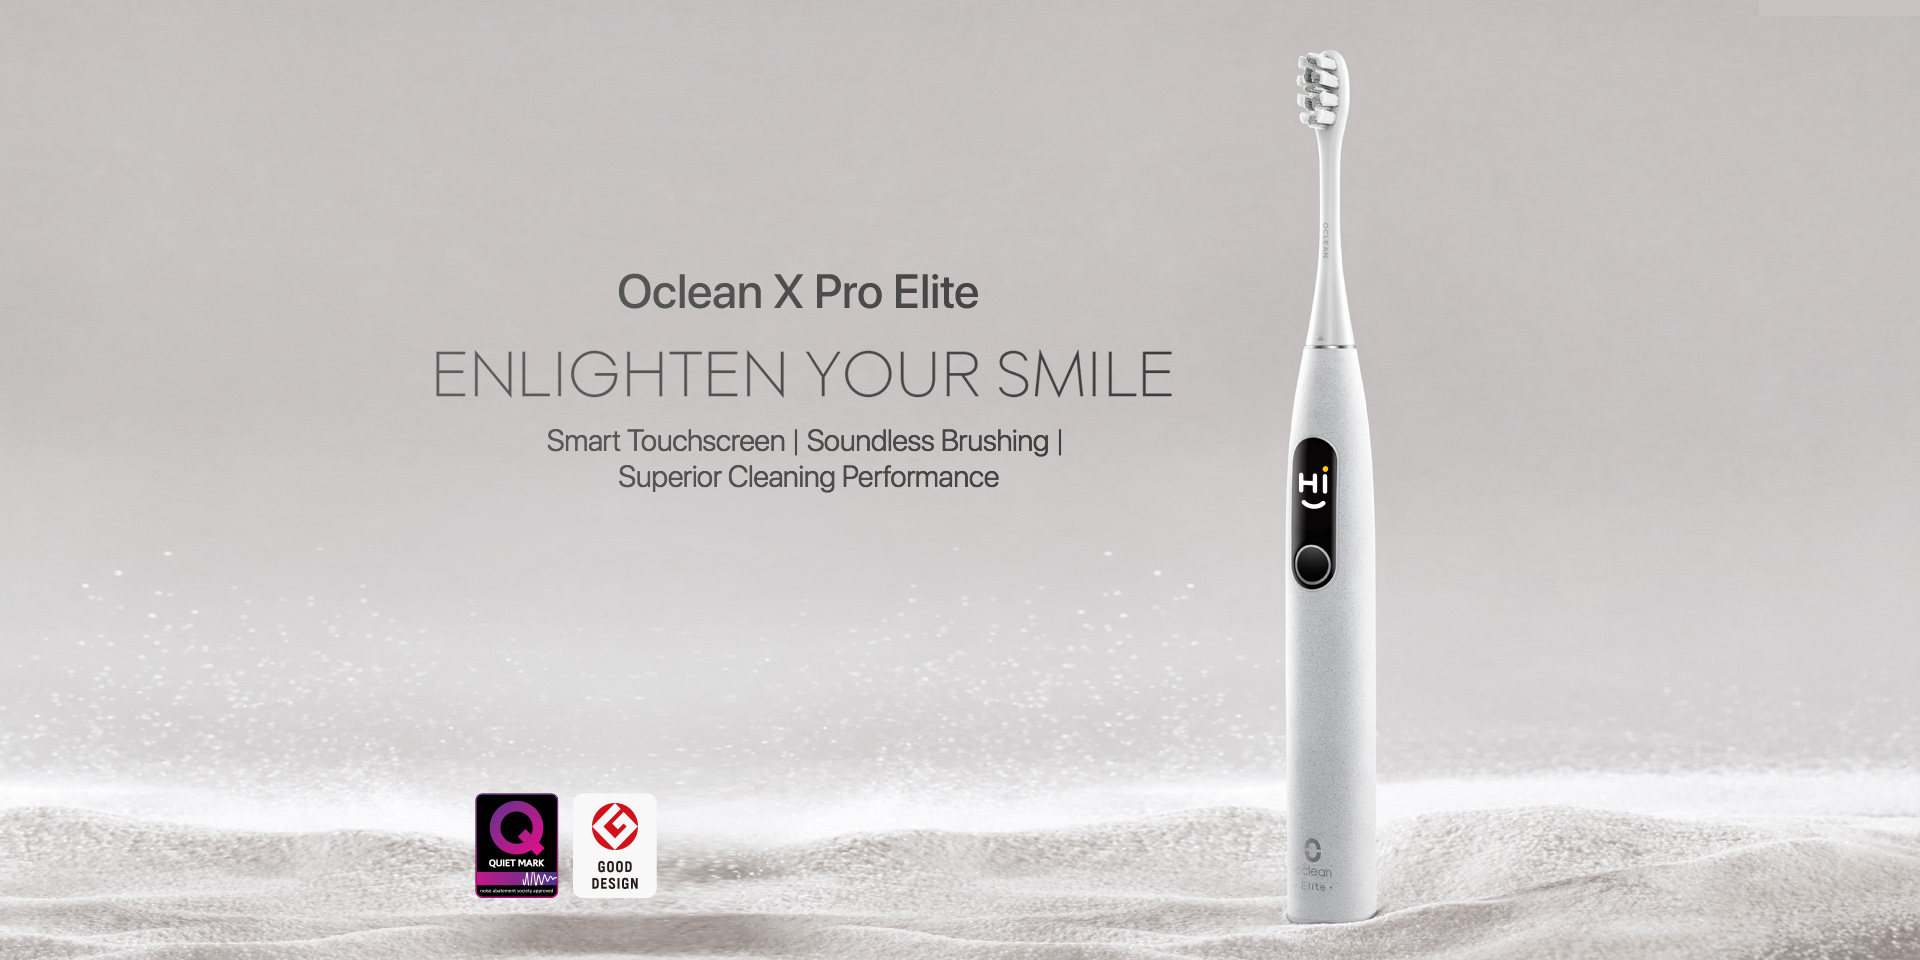 oclean X pro Elite englighien your smile